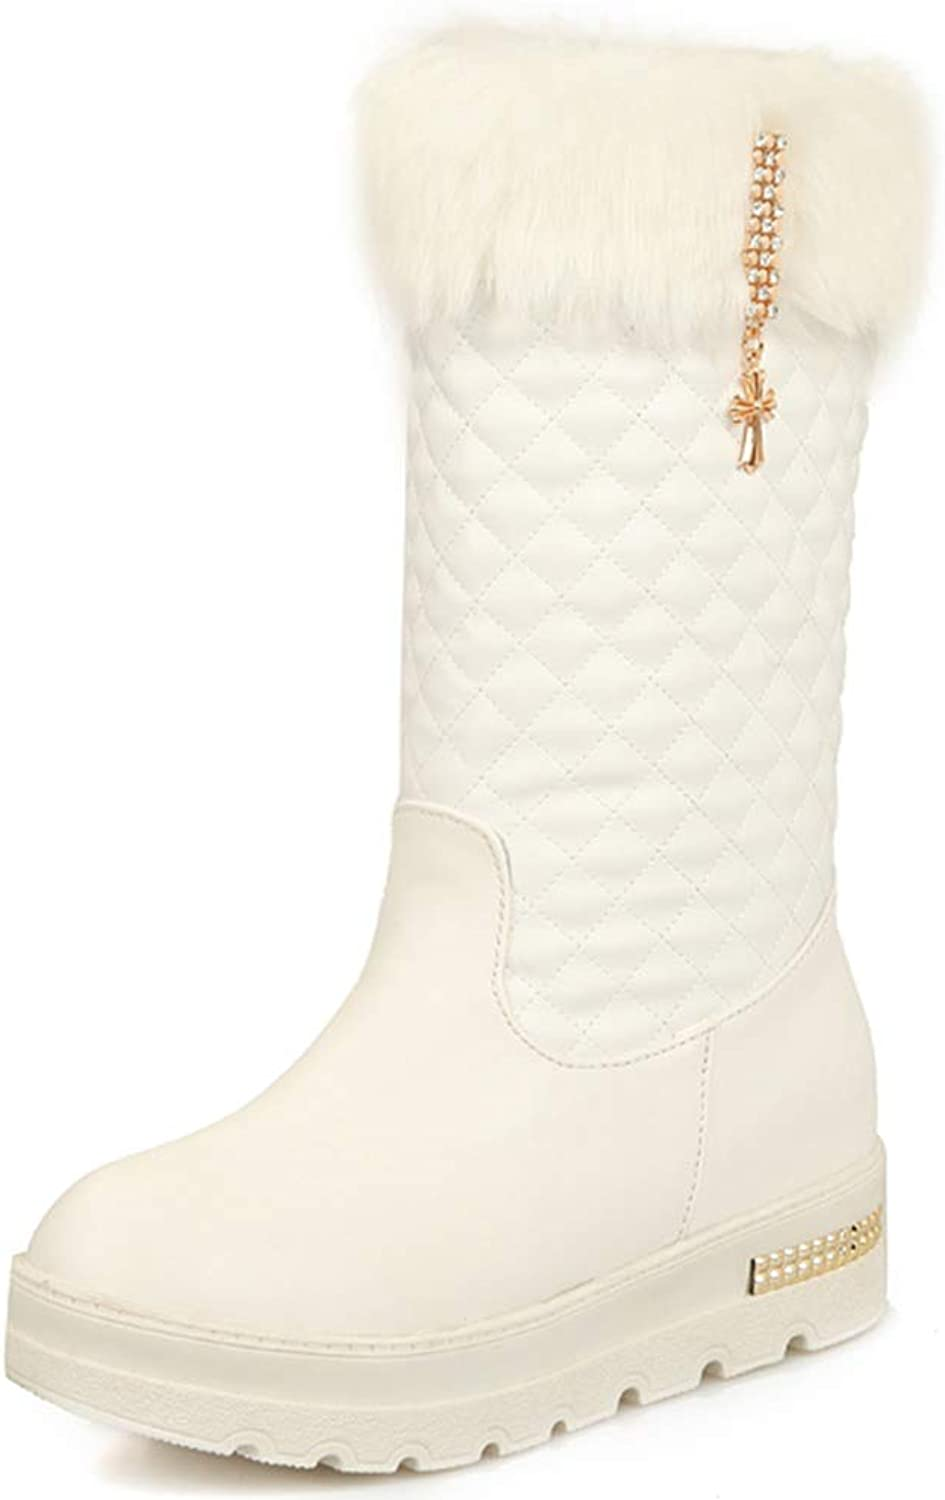 Kaloosh Women's Fashion Pendant Diamond Quilted Round Toe Mid Calf Boots